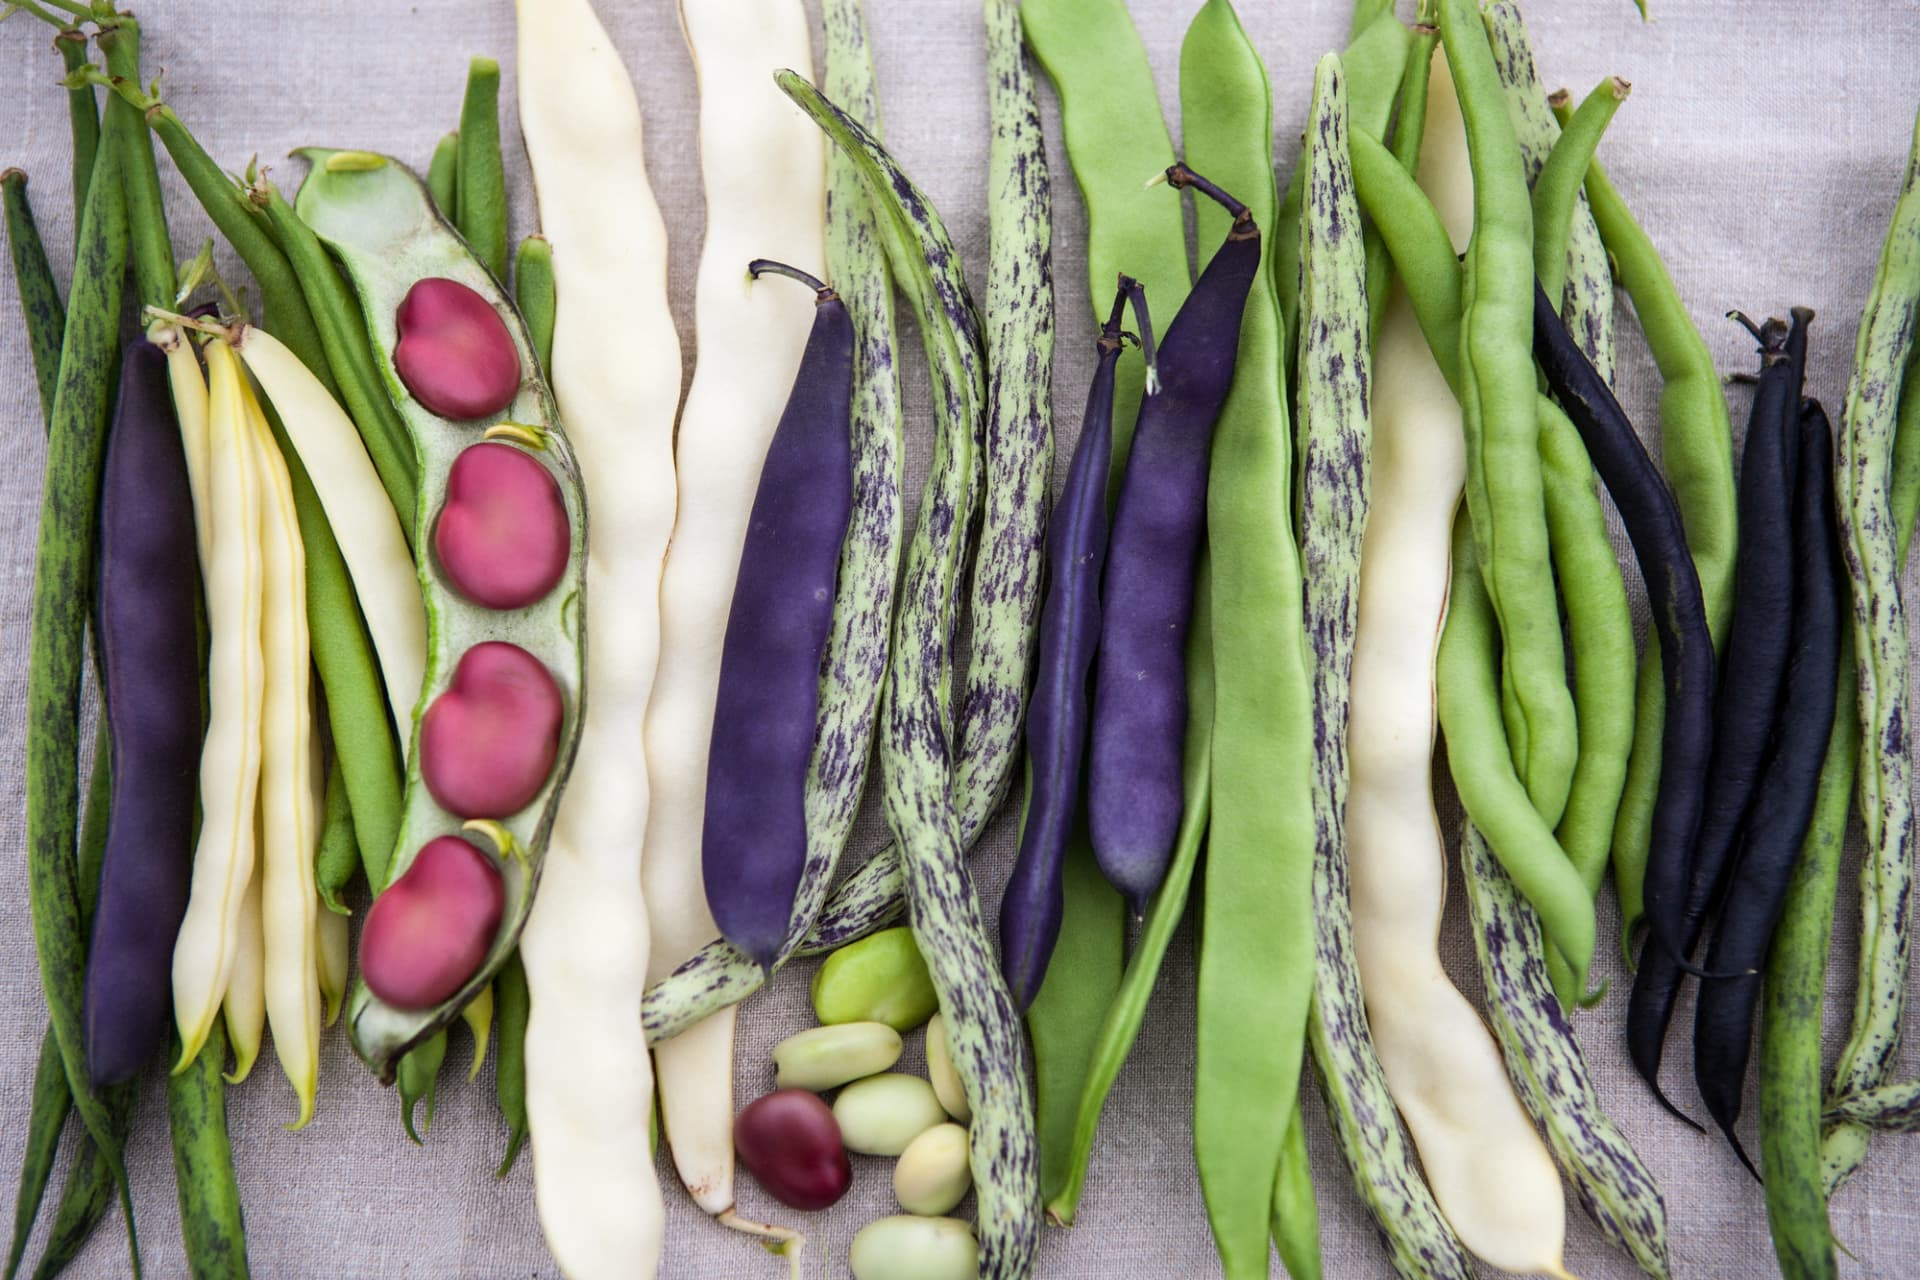 Here, among others, we havestriped BernerLandfrauen, the dark purple Purple Queen, with green and light yellow cut beans.